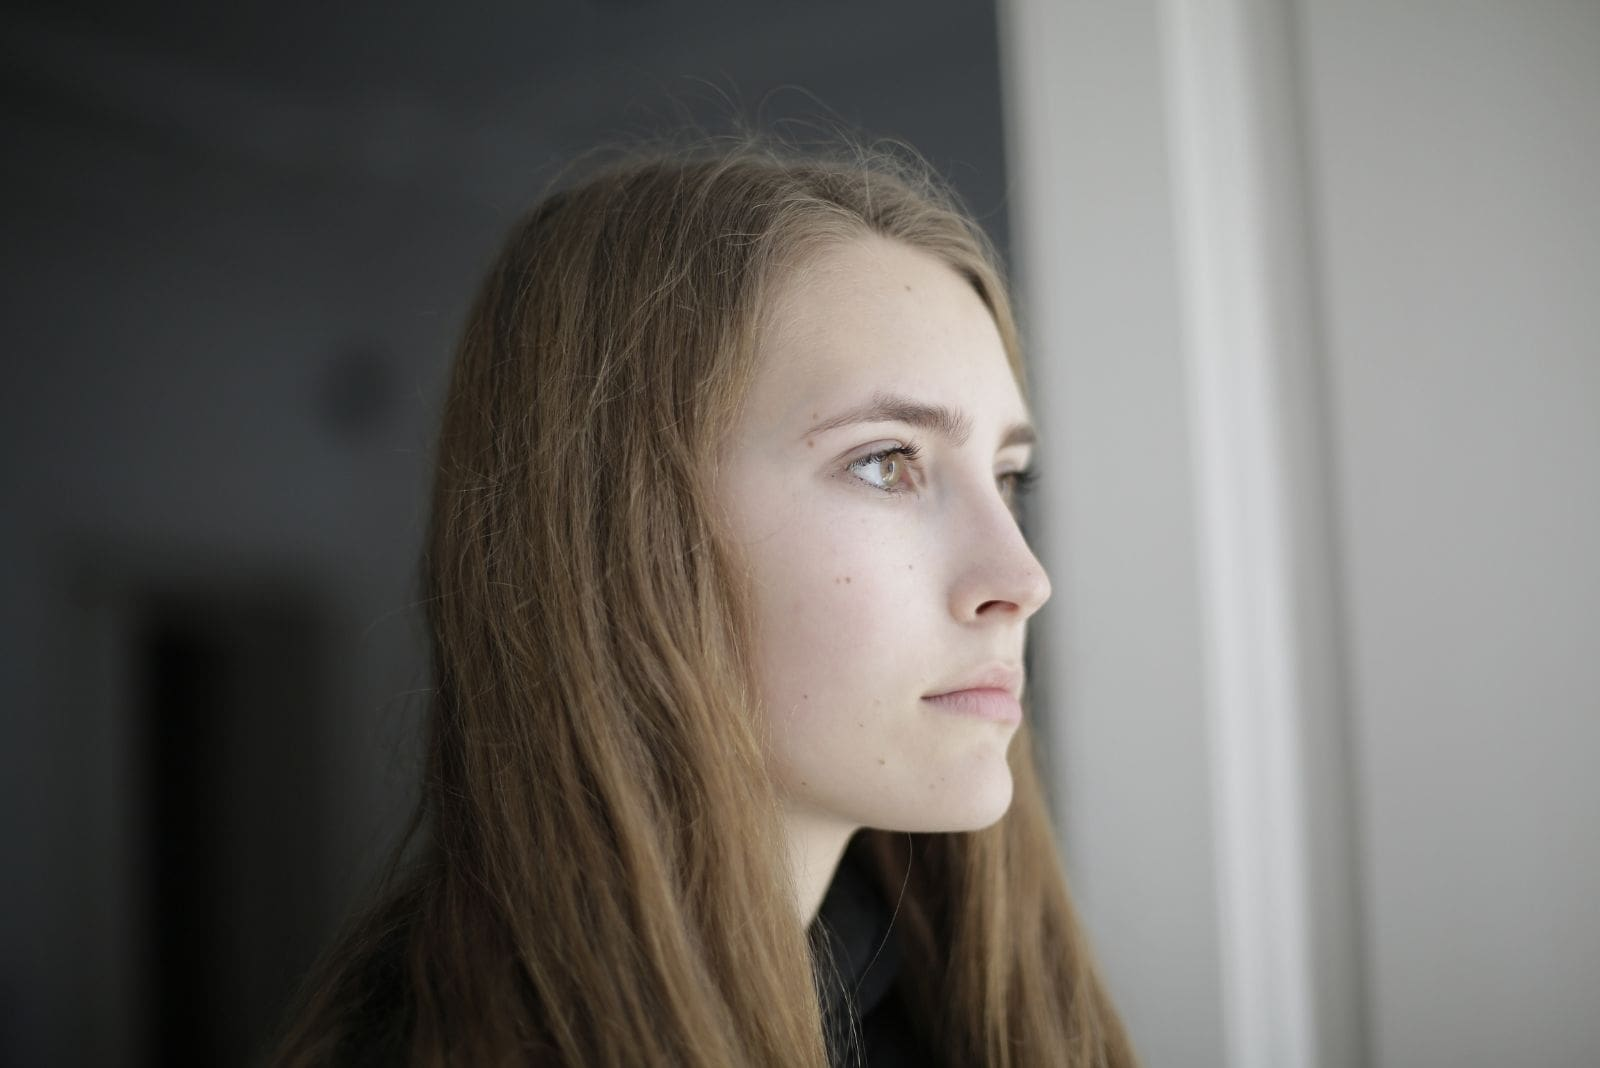 pensive young lady looking outside the window in close up photo